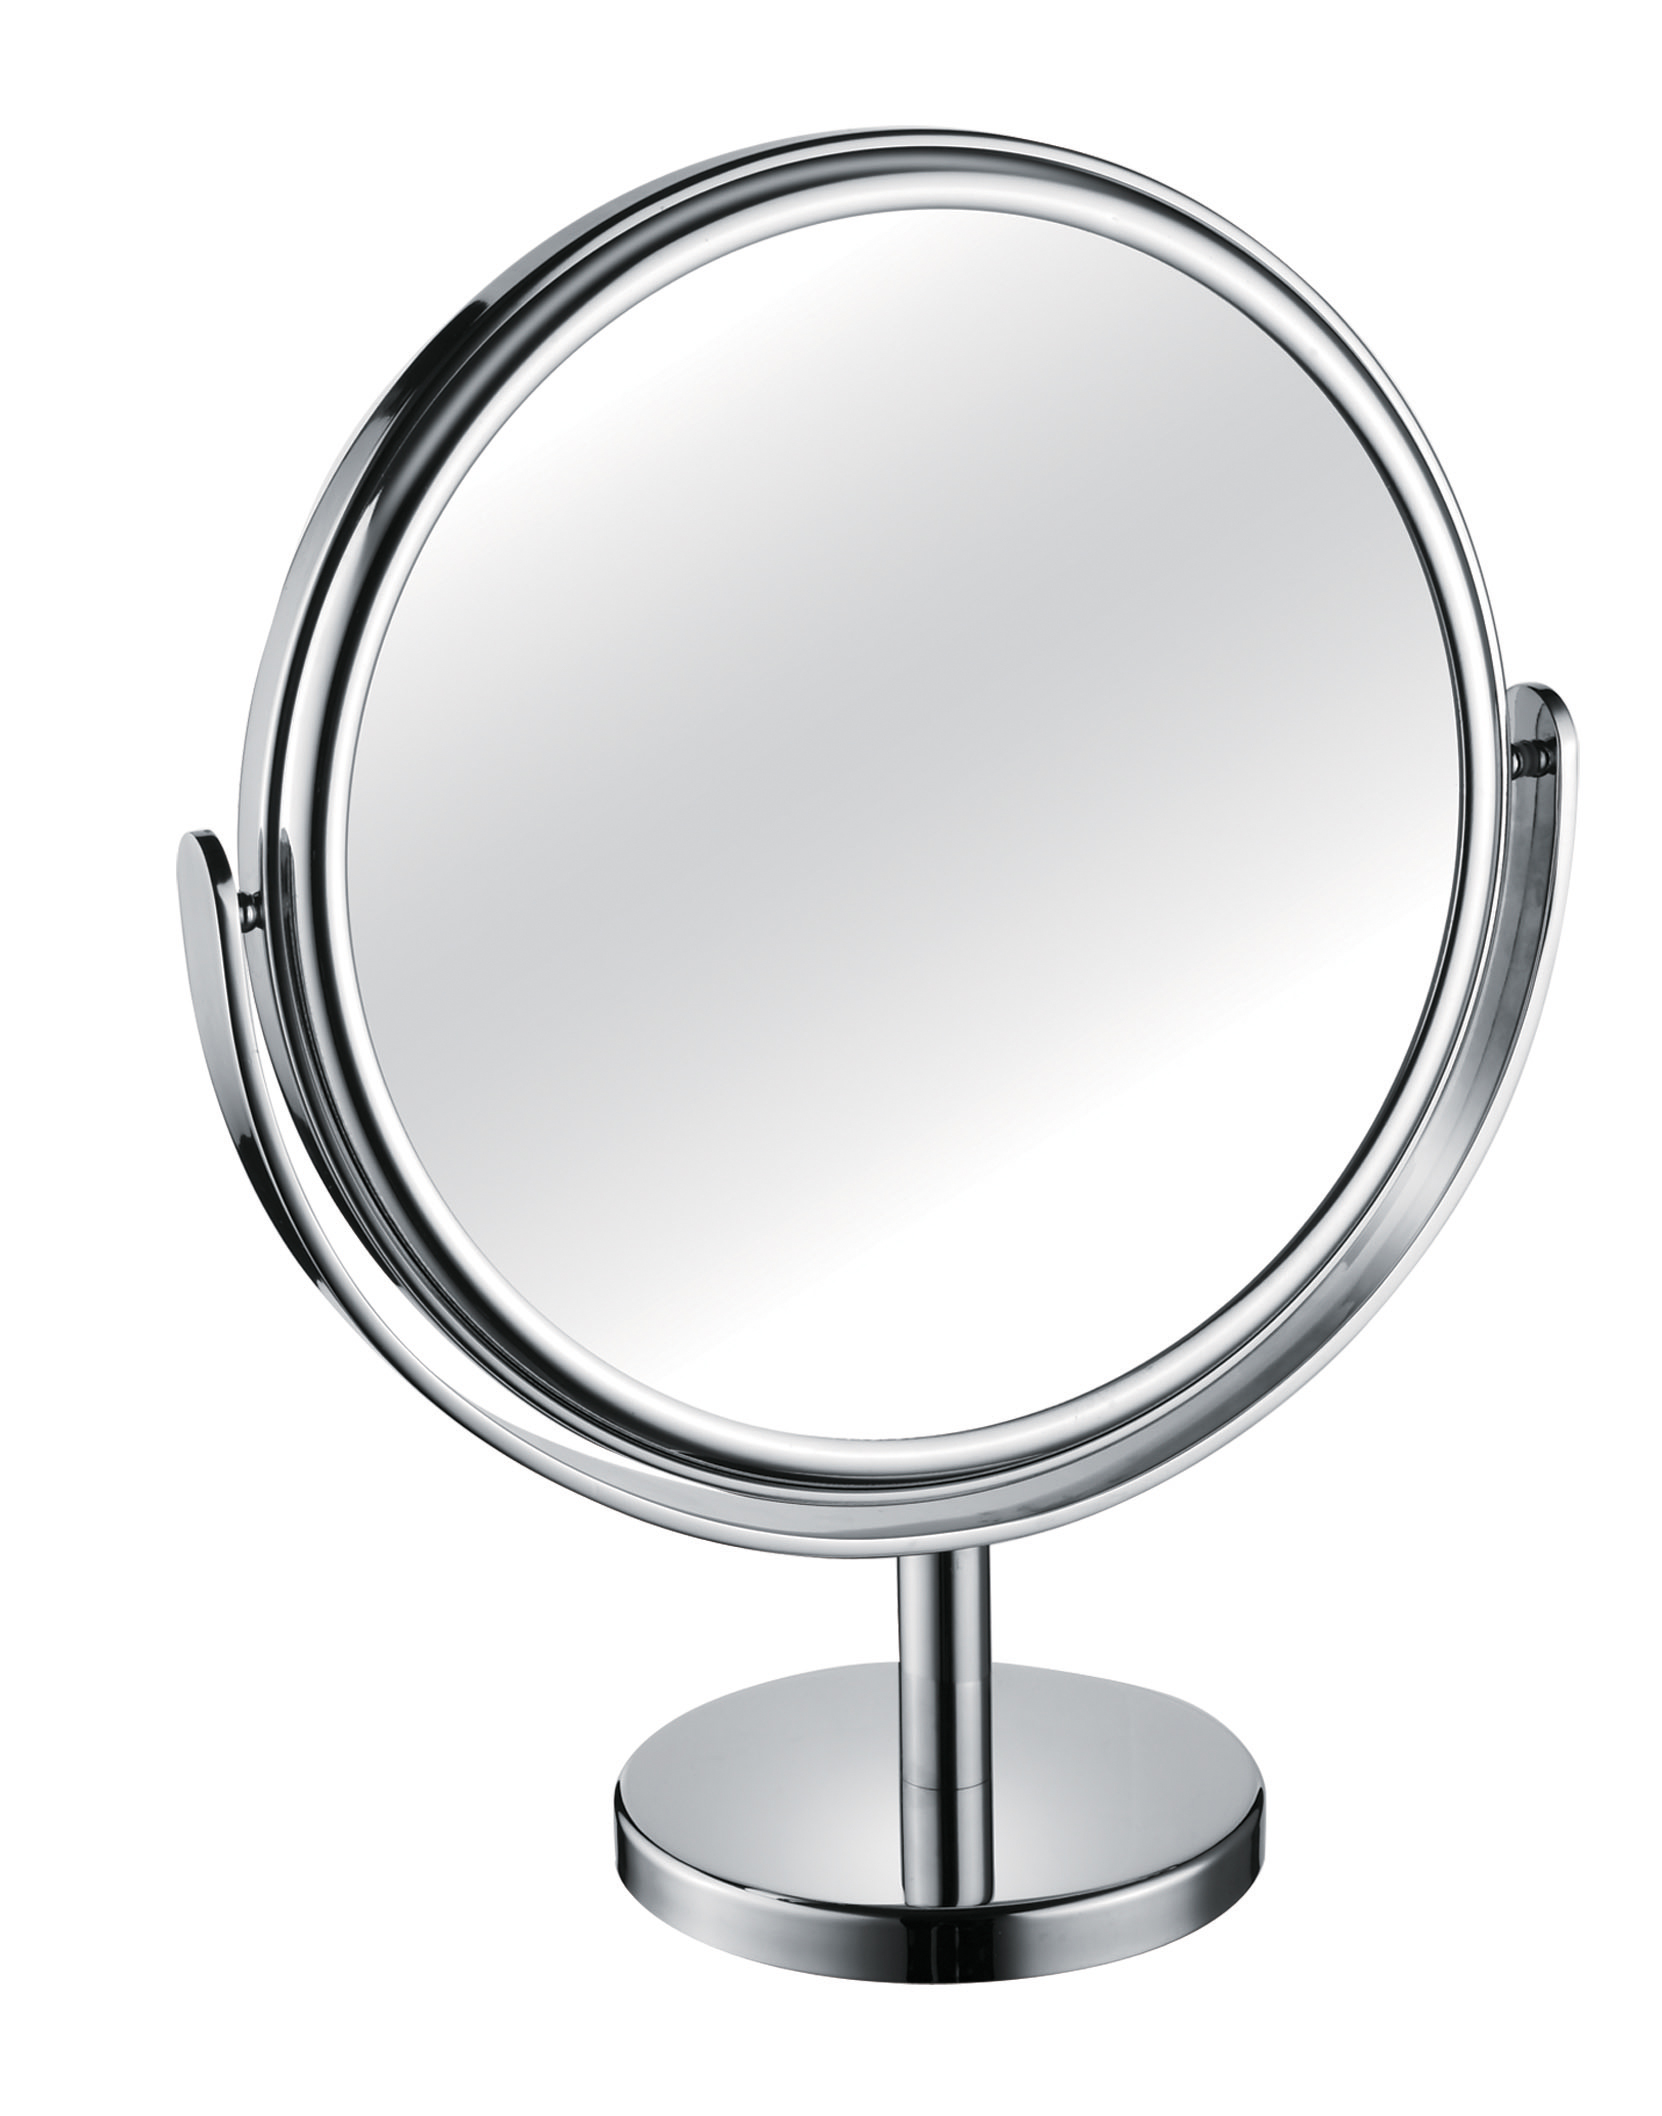 Bathroom Mirrors Extendable Magnifying buy mirrors online, framed mirrors and illuminated mirrors